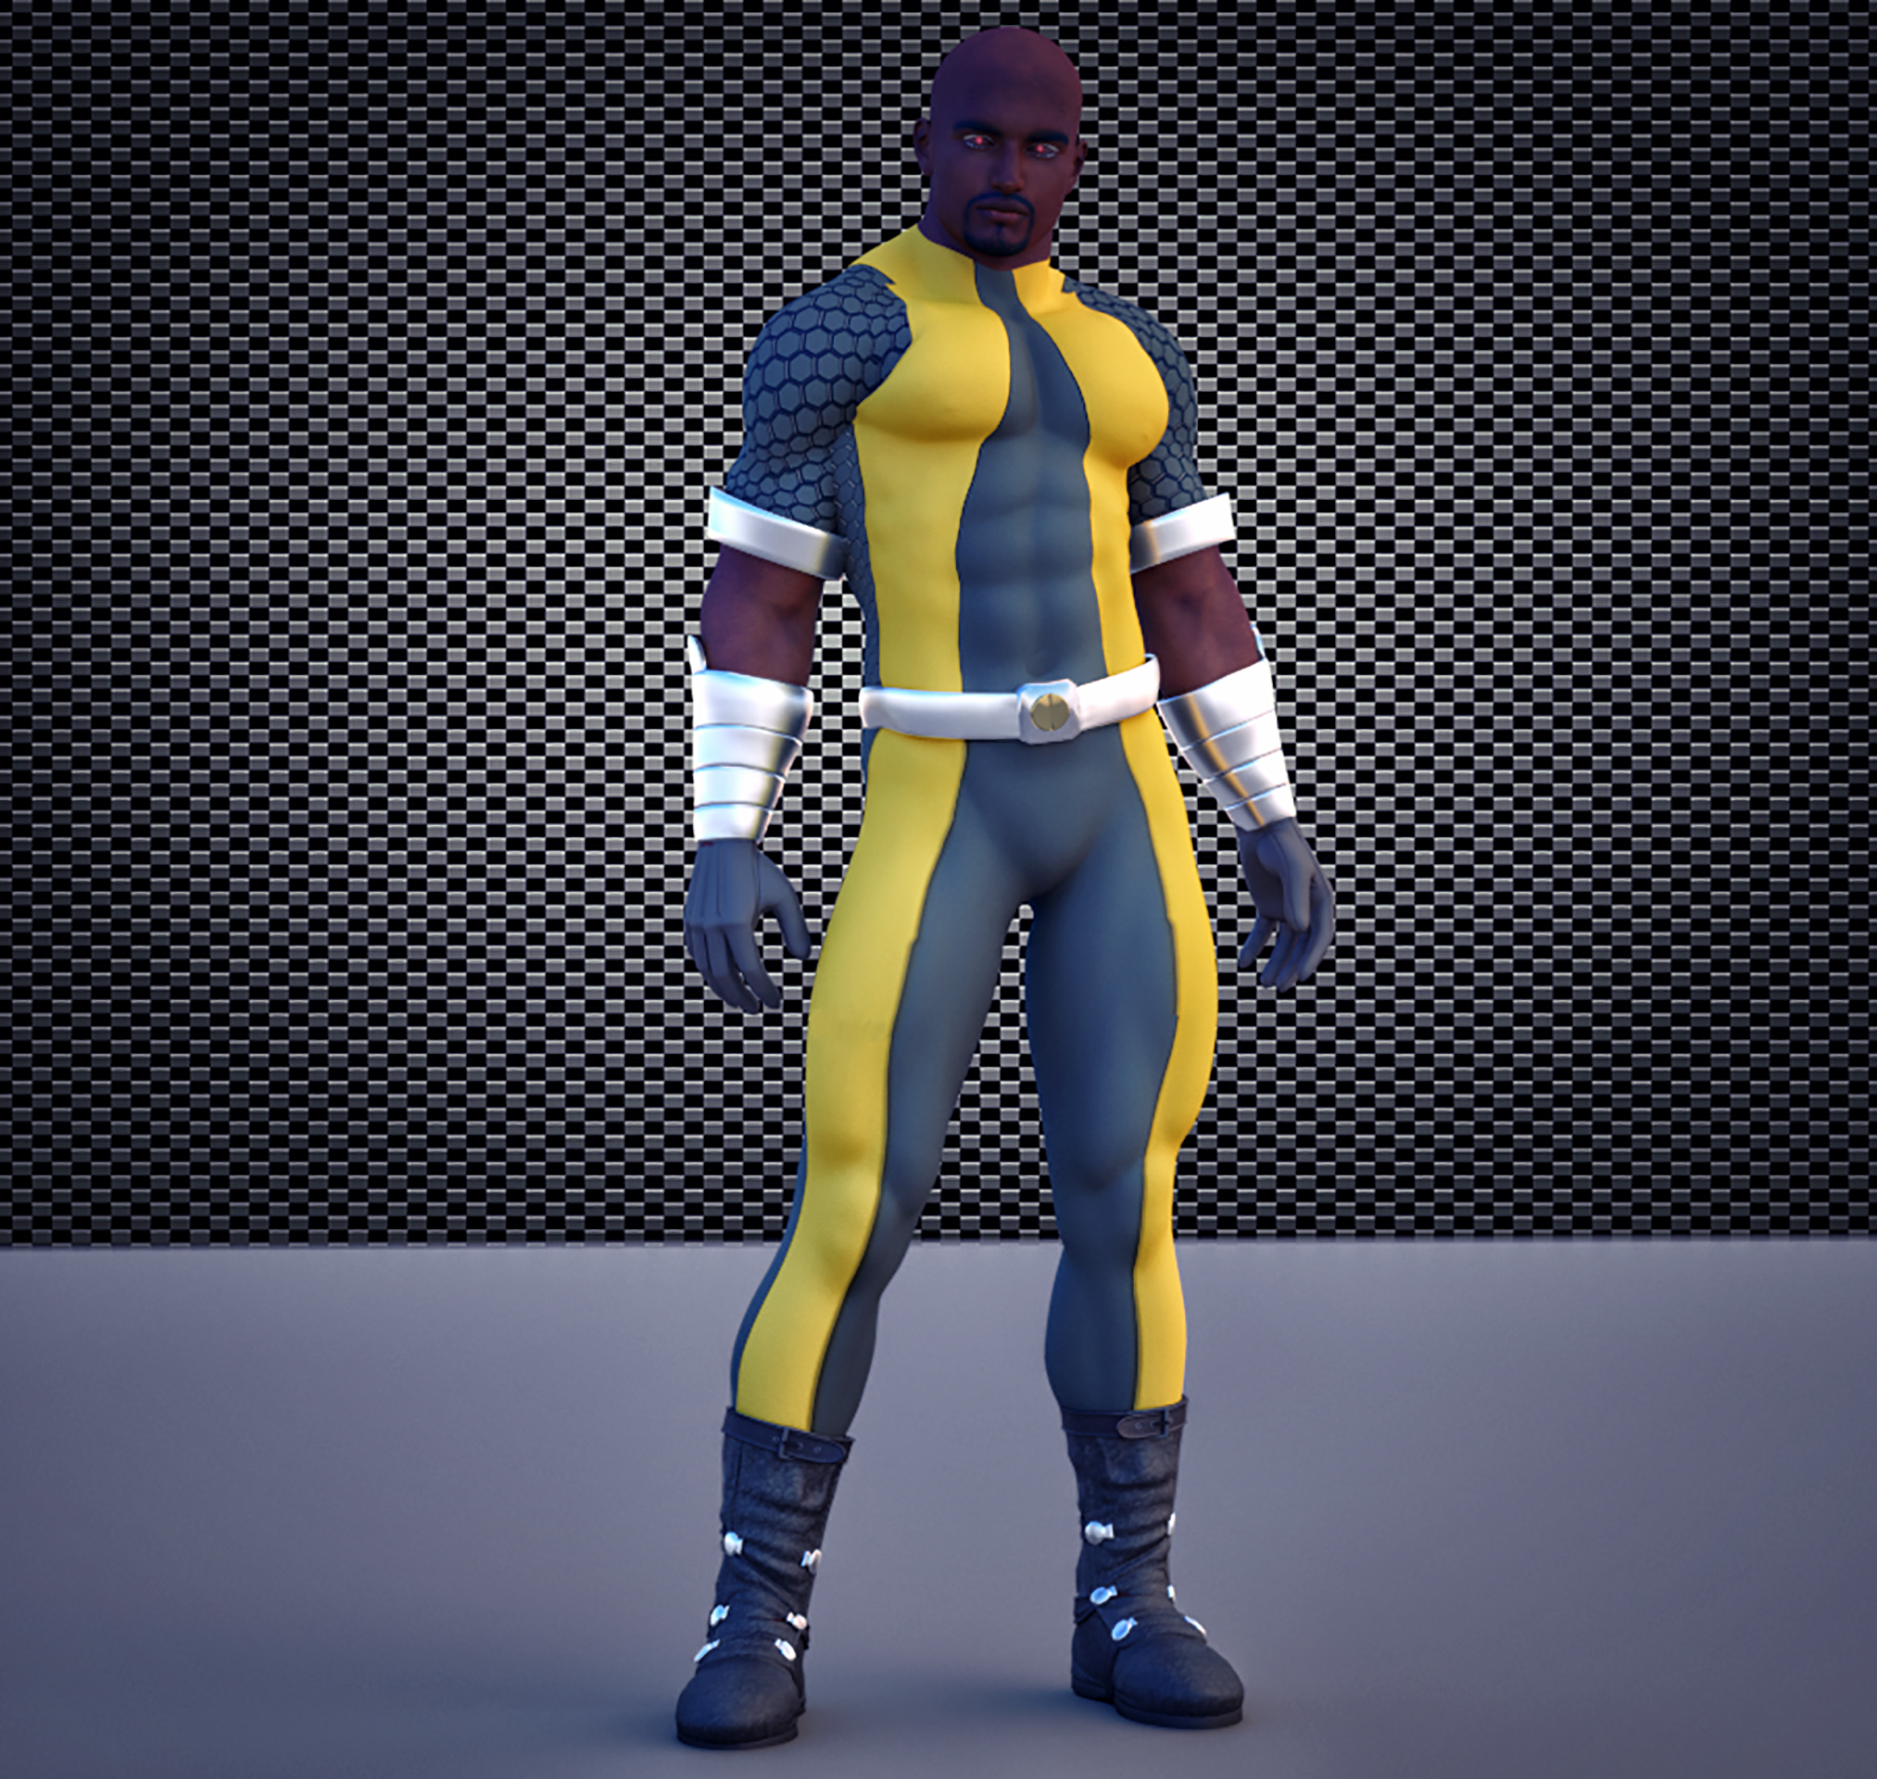 Luke Cage second skin textures for M4